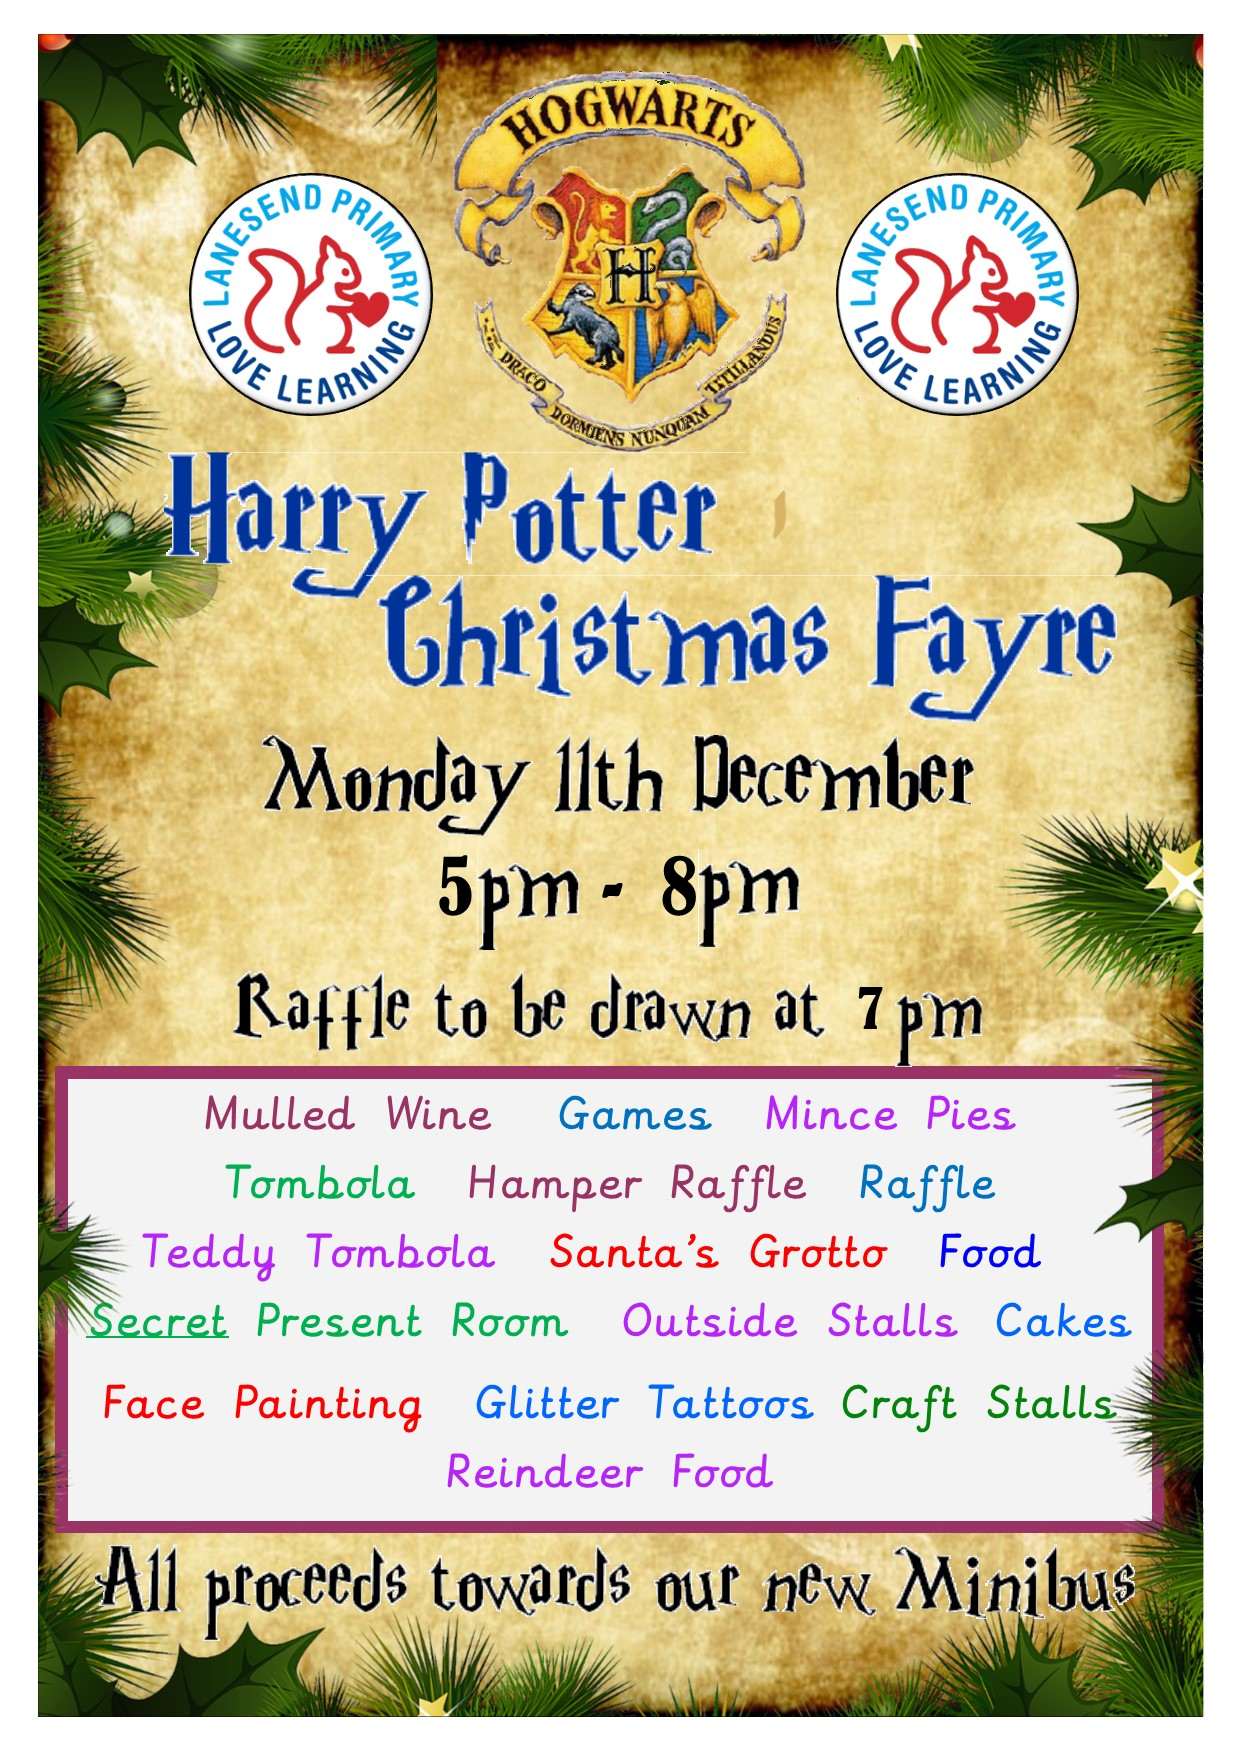 Harry Potter Themed Christmas Fayre 2017